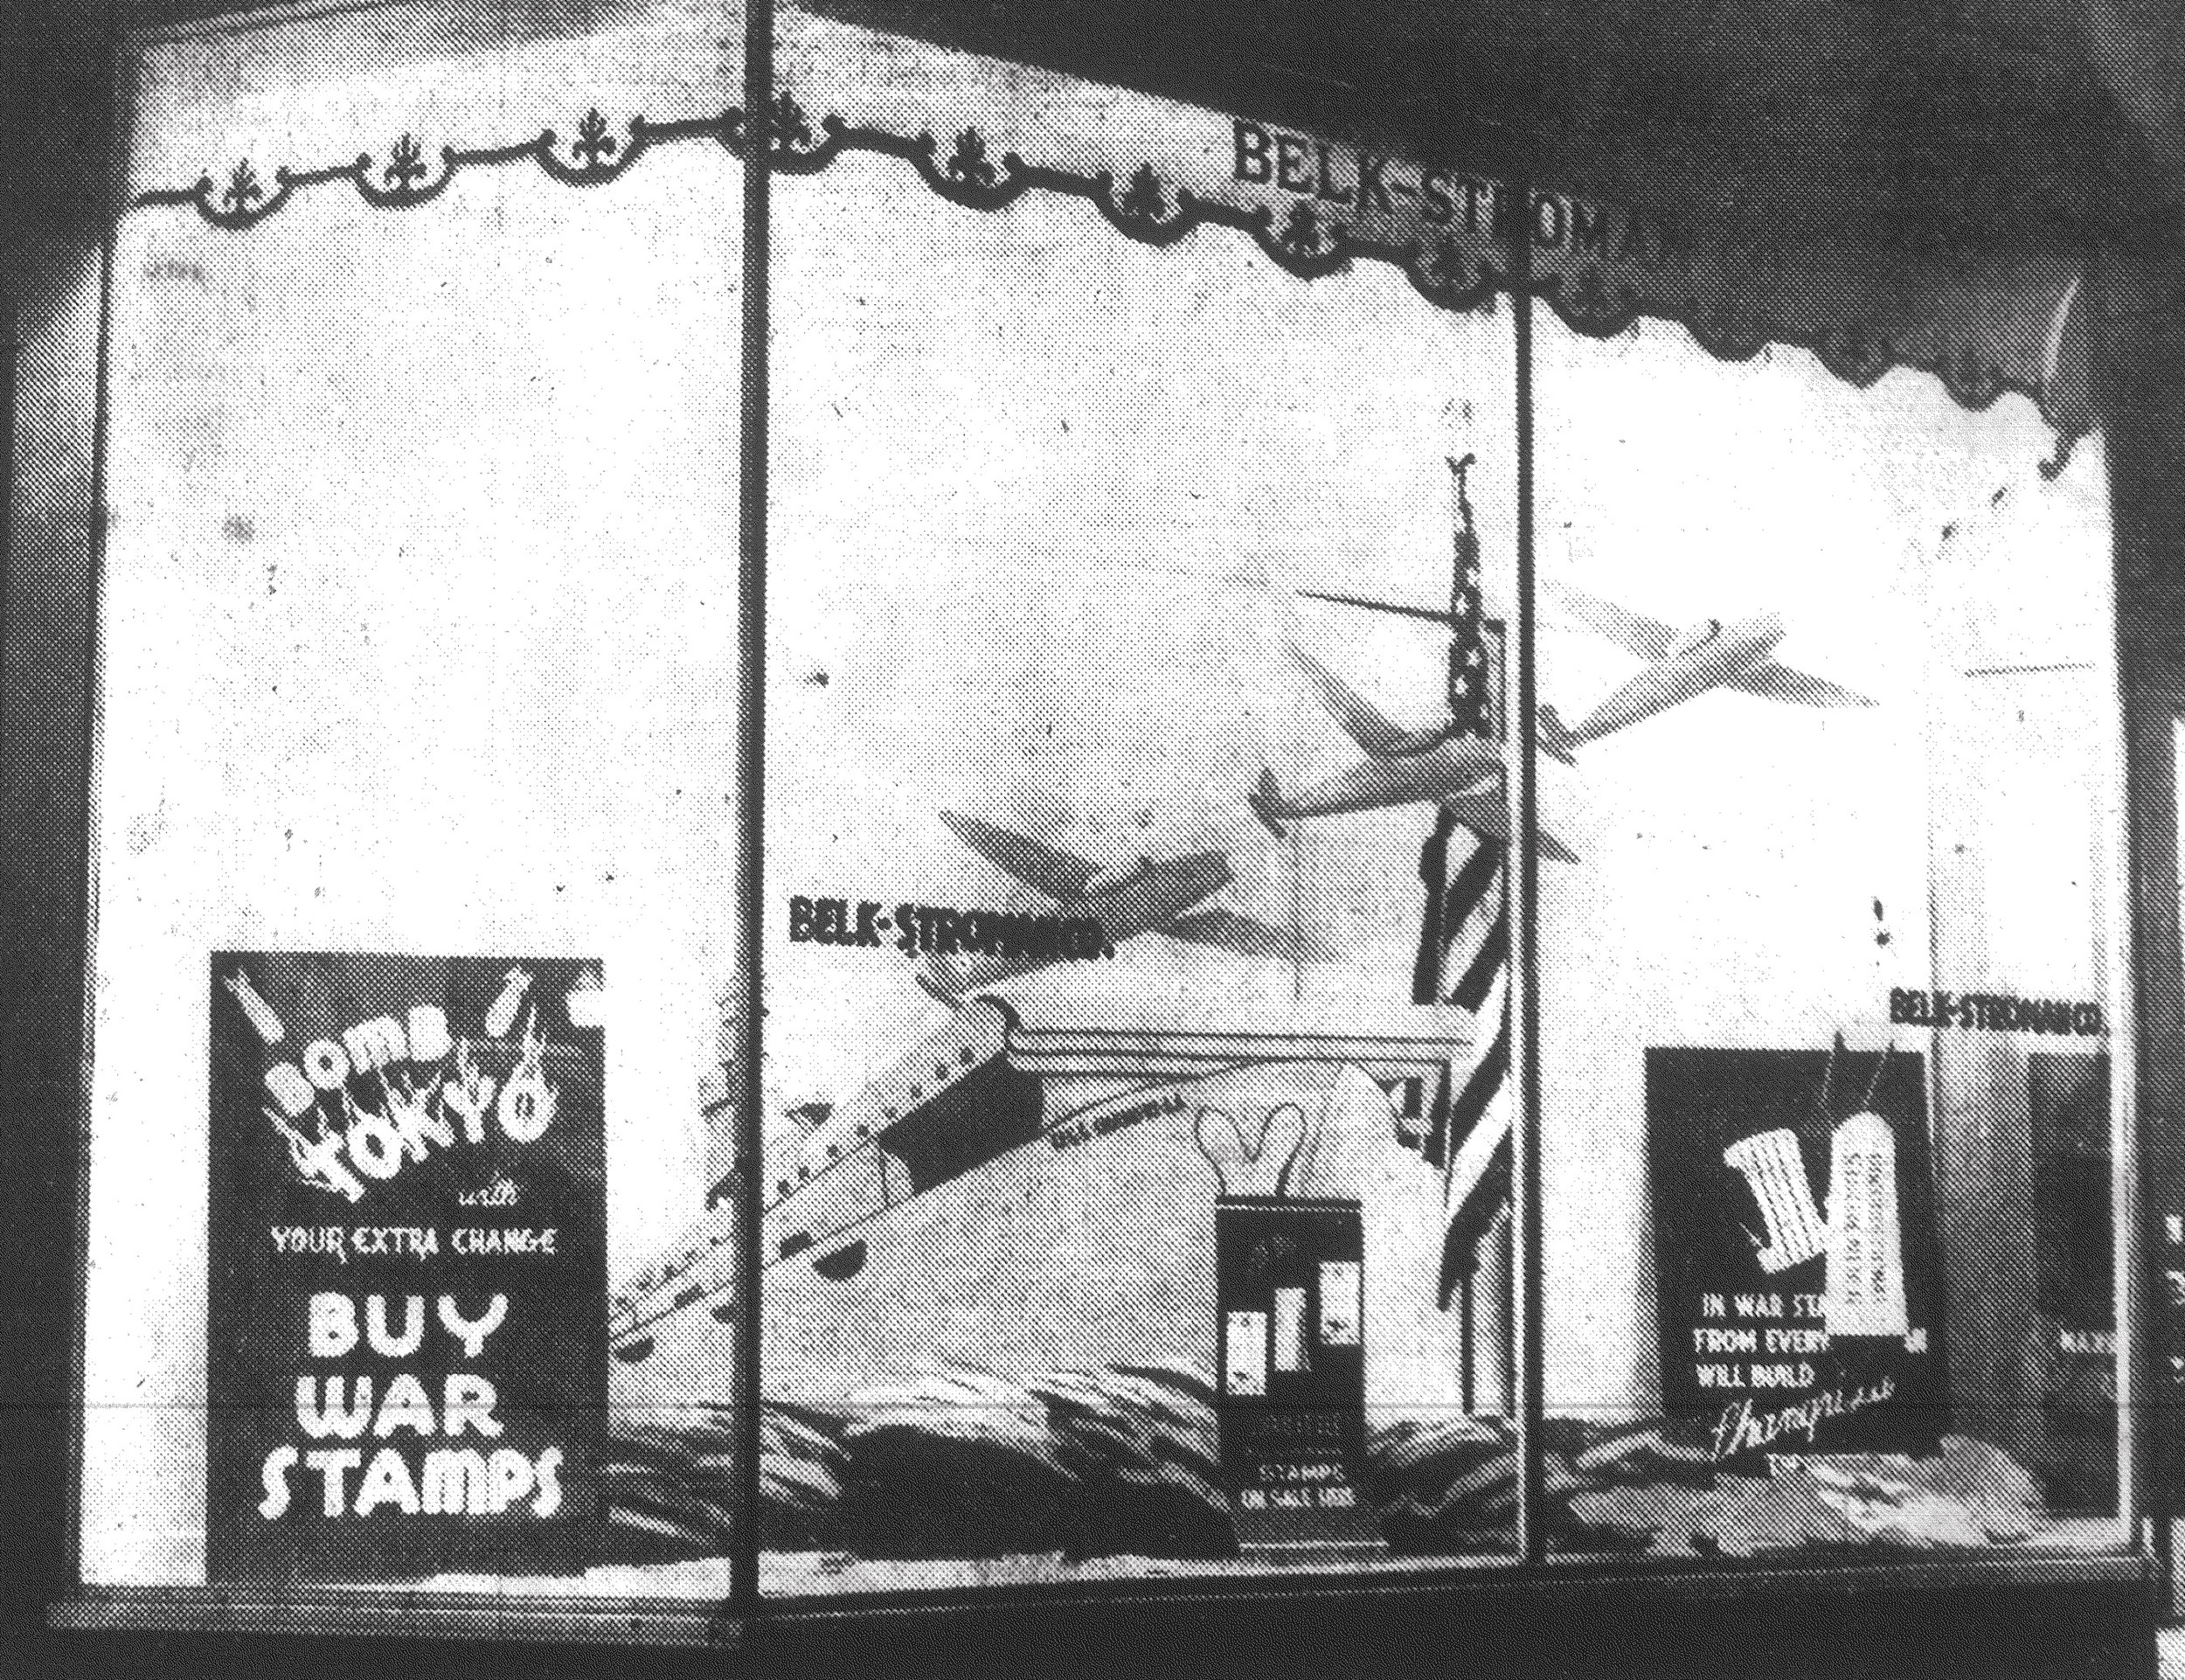 """Buy stamps to bomb Tokyo"" from the Aircraft Carrier Shang ri-la is the aim of a window display at Belk-Stroman Co. The display was blue and was fixed by J.O. Talbort, employee of the store, in 1943."